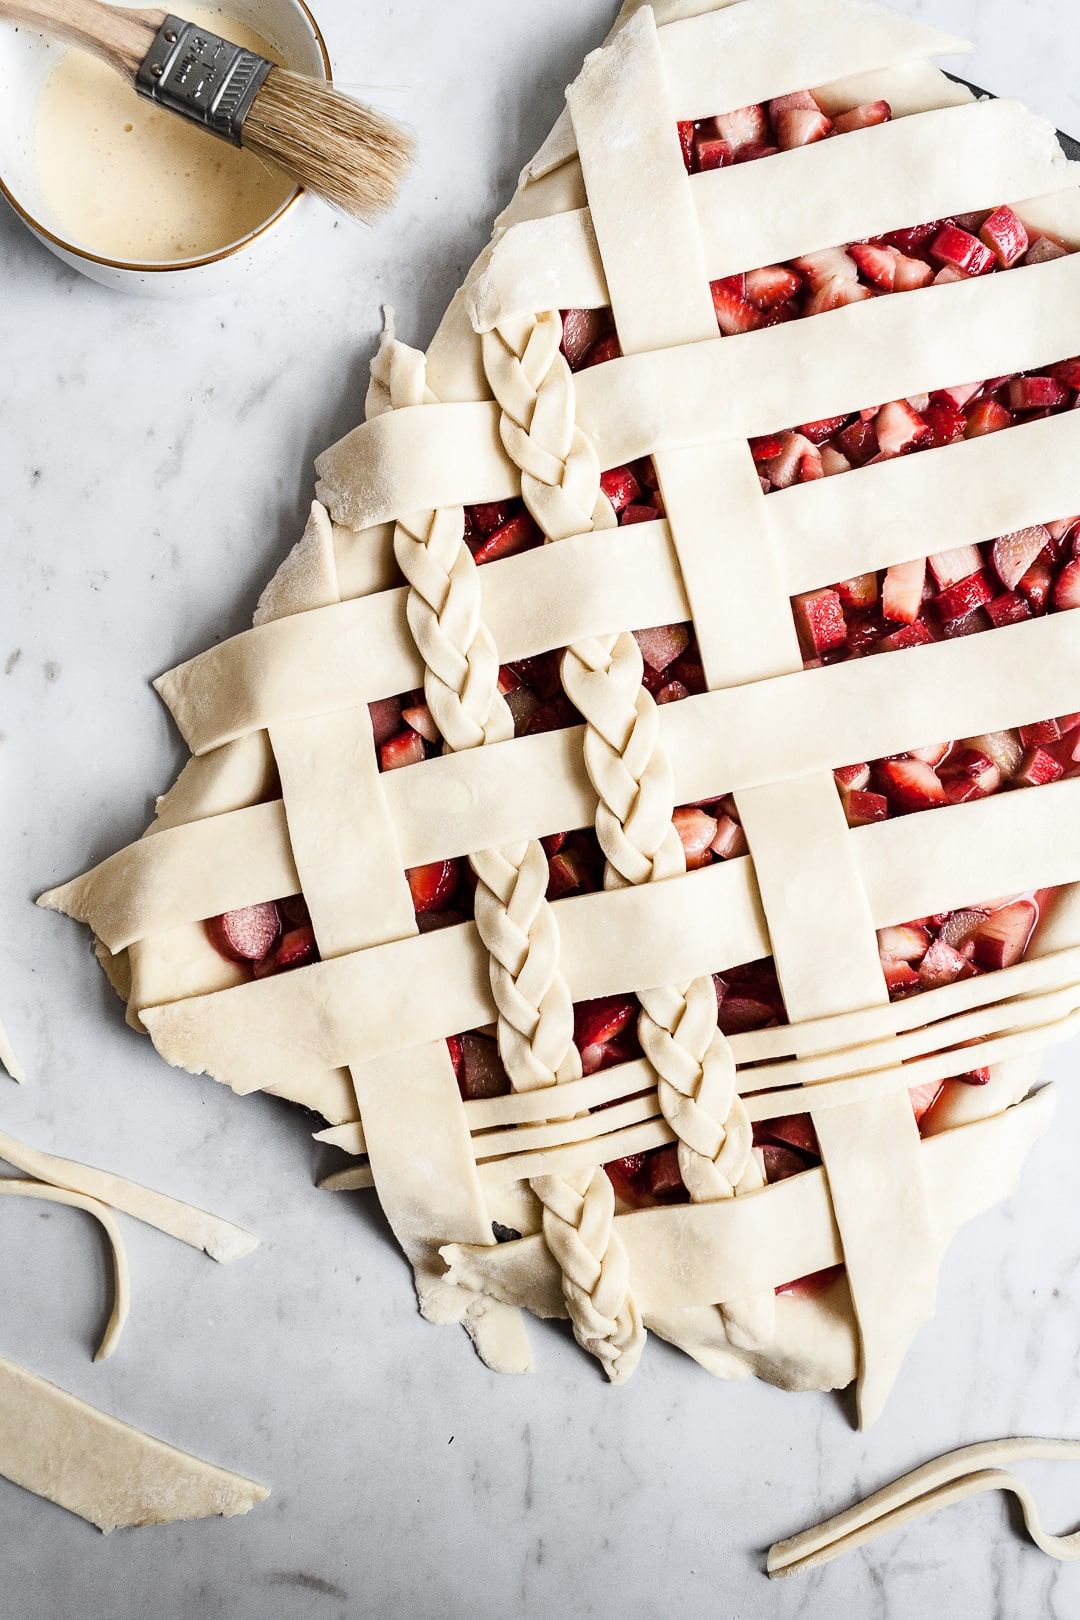 Top view of unbaked strawberry rhubarb slab pie with angled woven lattice crust with braids on a white background